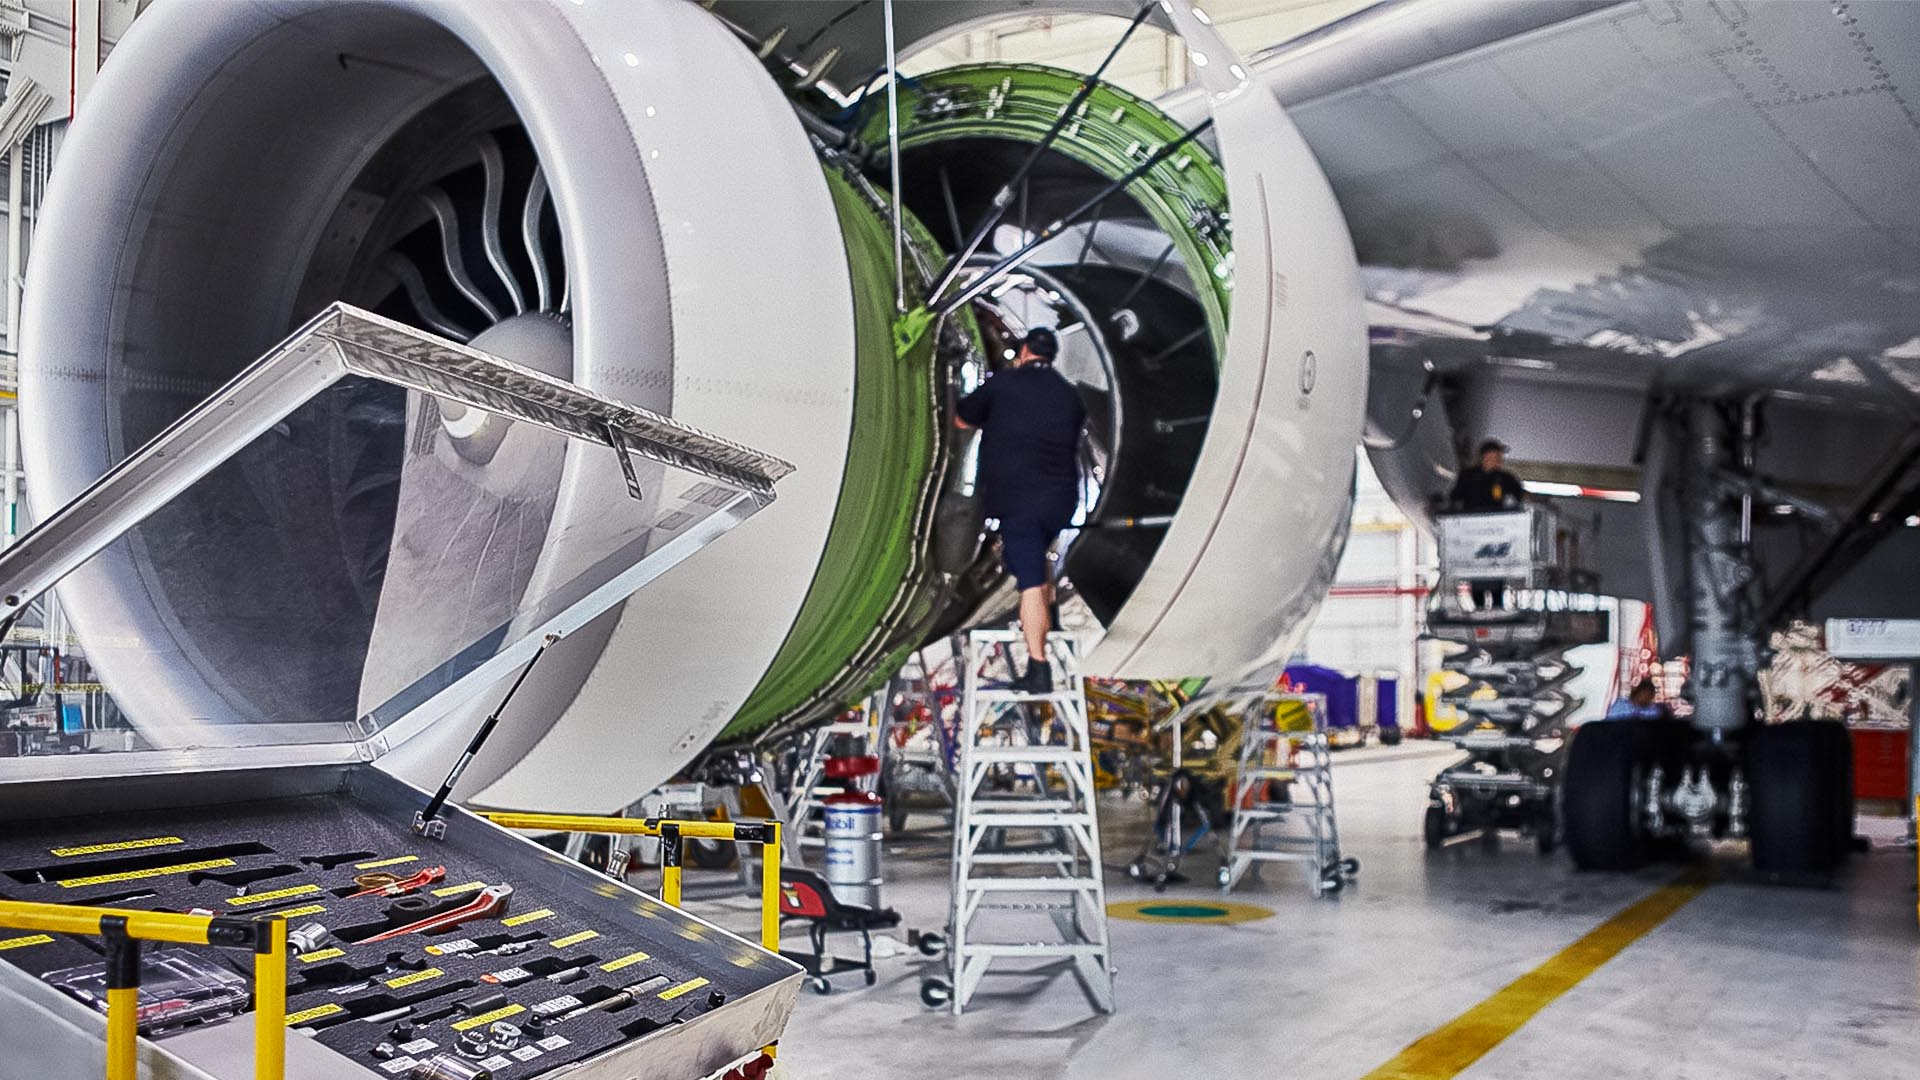 FedEx Manages Airplane Maintenance with GIS, Location Intelligence